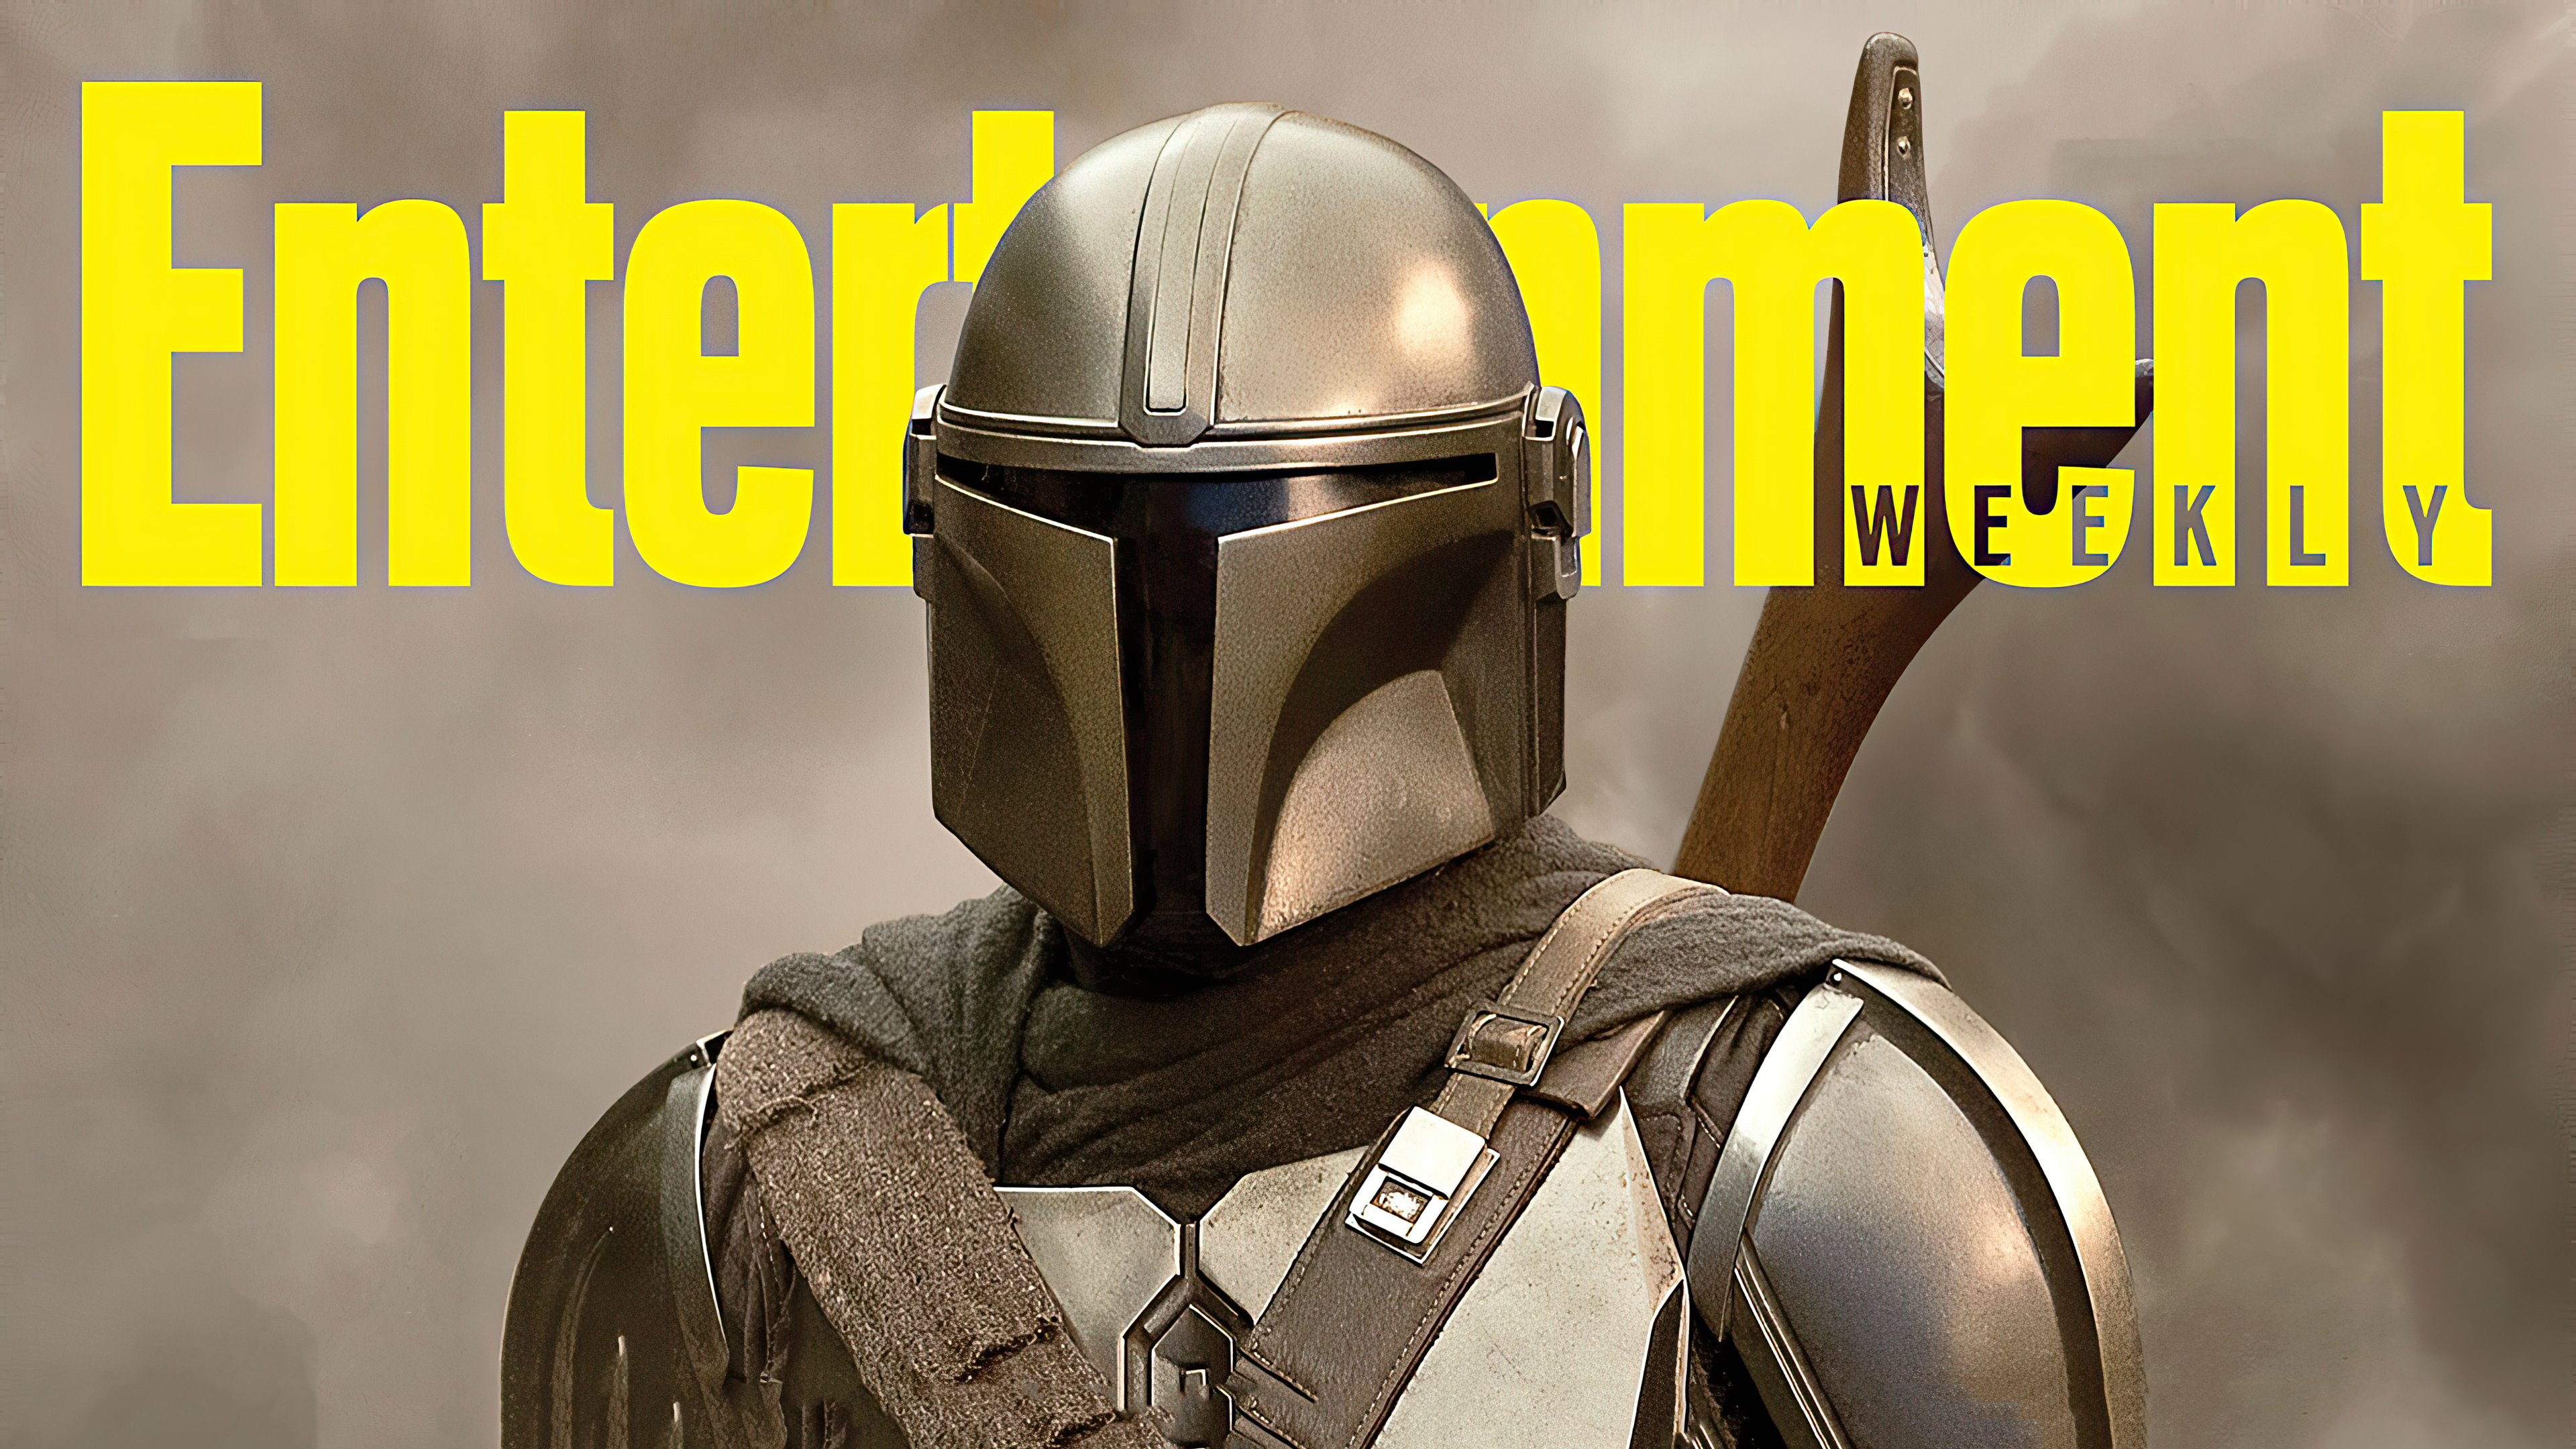 The Mandalorian Season 2 Entertainment Weekly Hd Tv Shows 4k Wallpapers Images Backgrounds Photos And Pictures